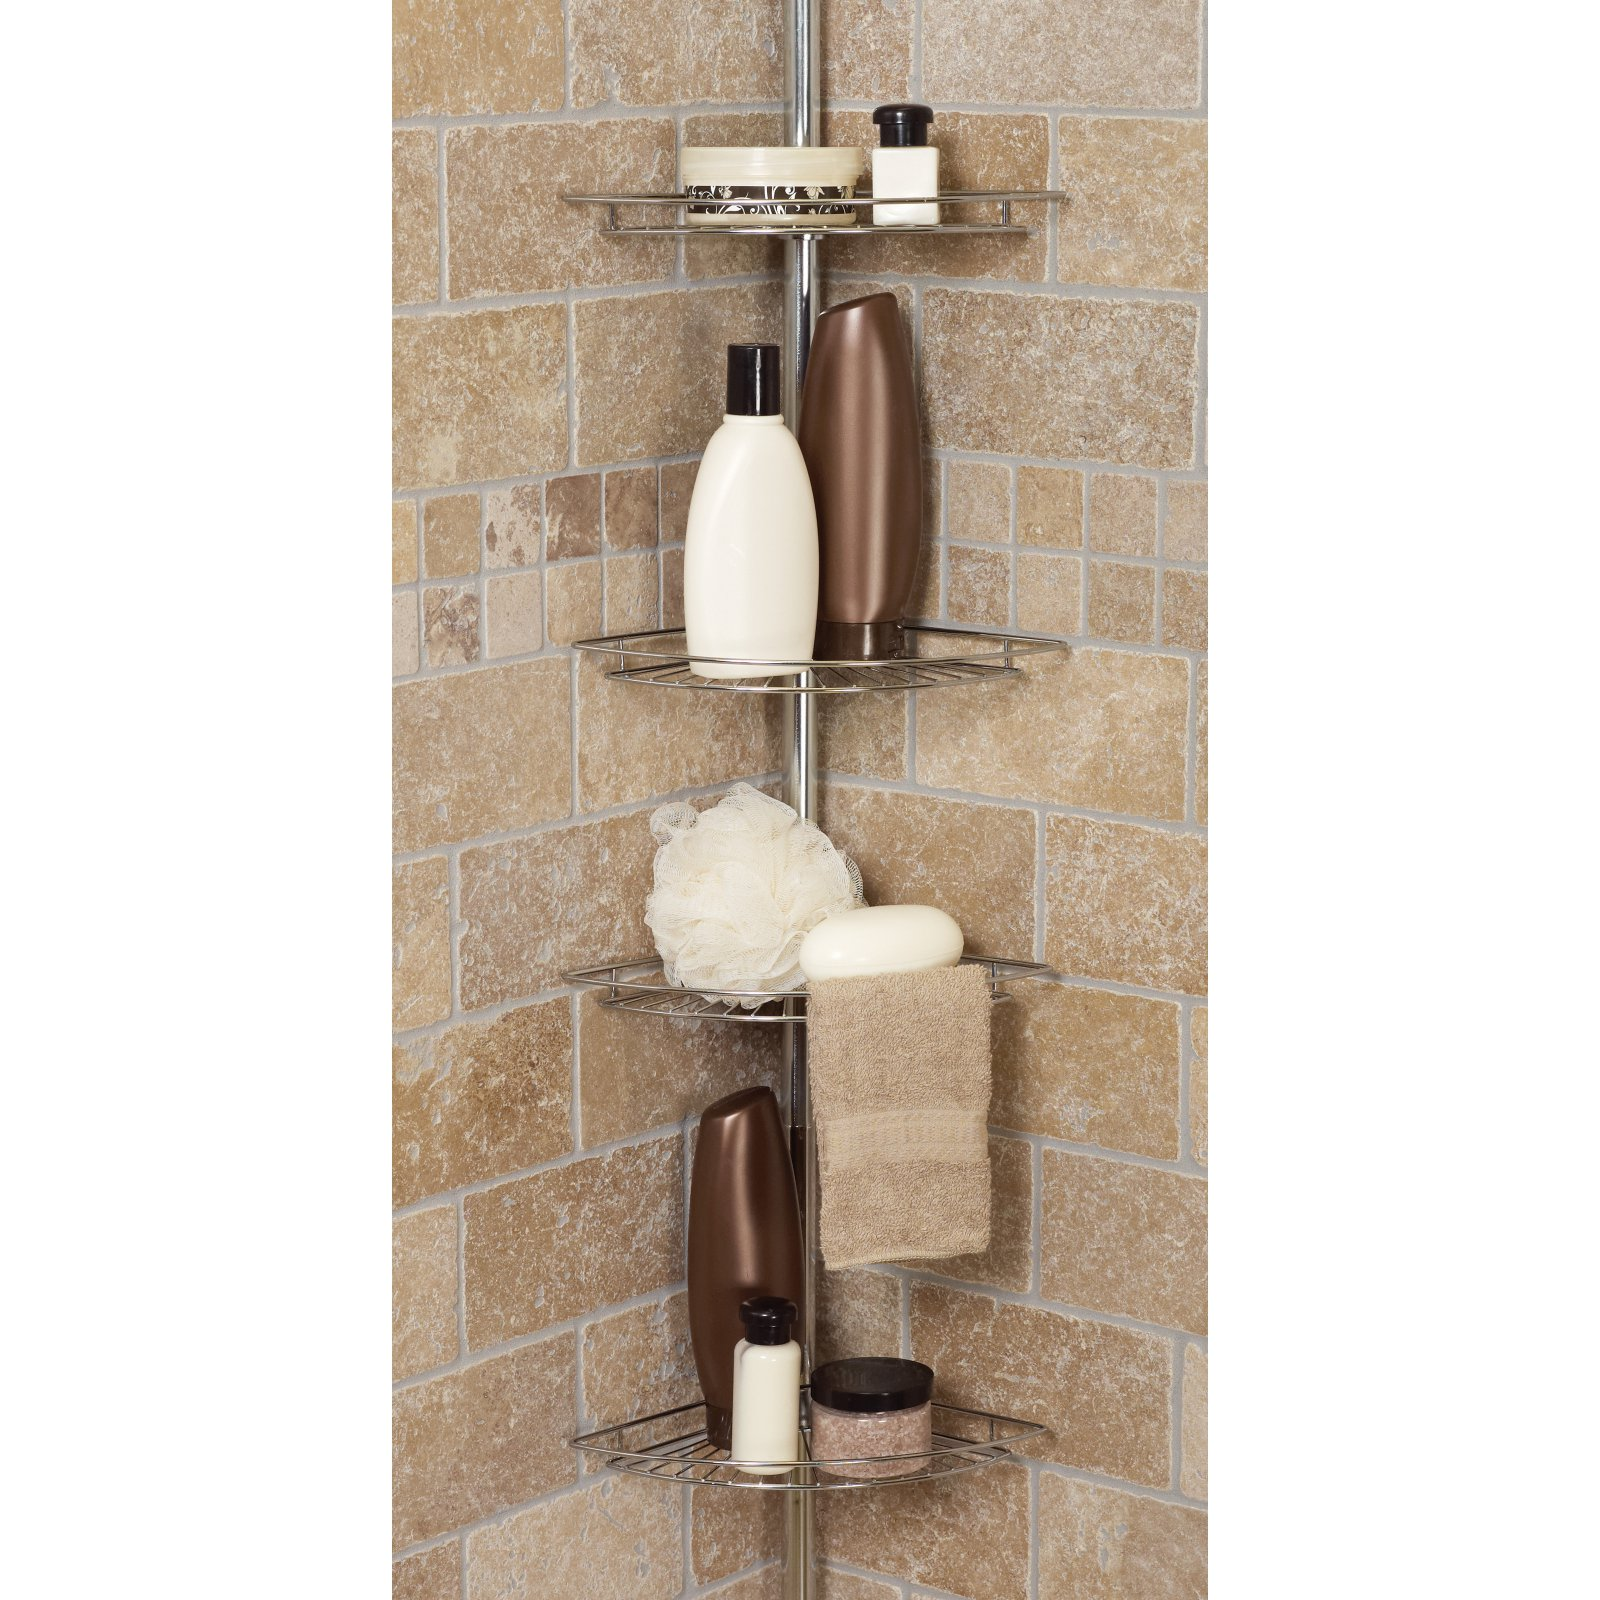 Zenith Products 4-Shelf Tension Pole Caddy, White